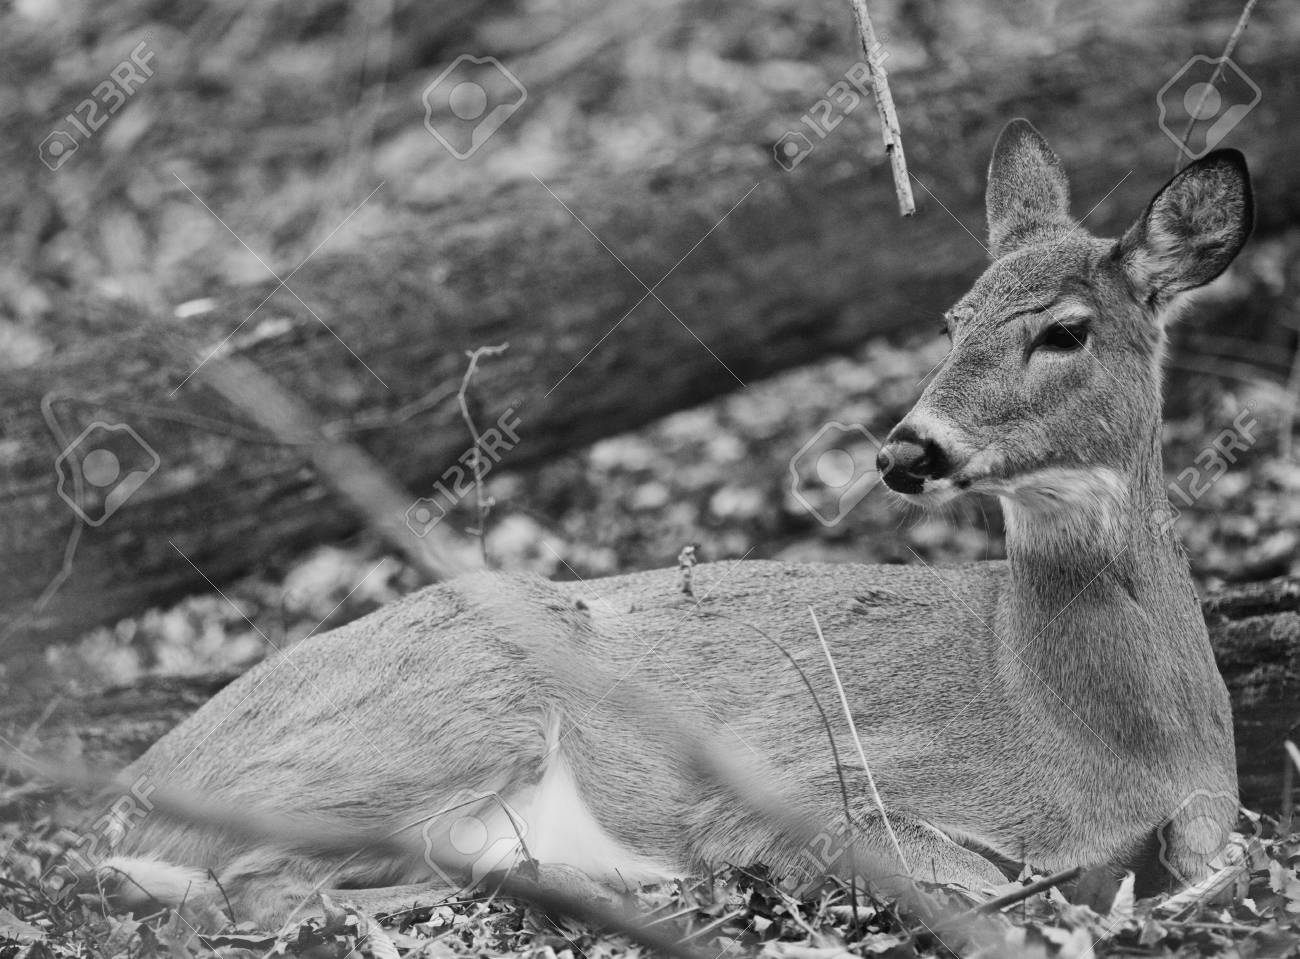 Black and white photo of a deer in the forest